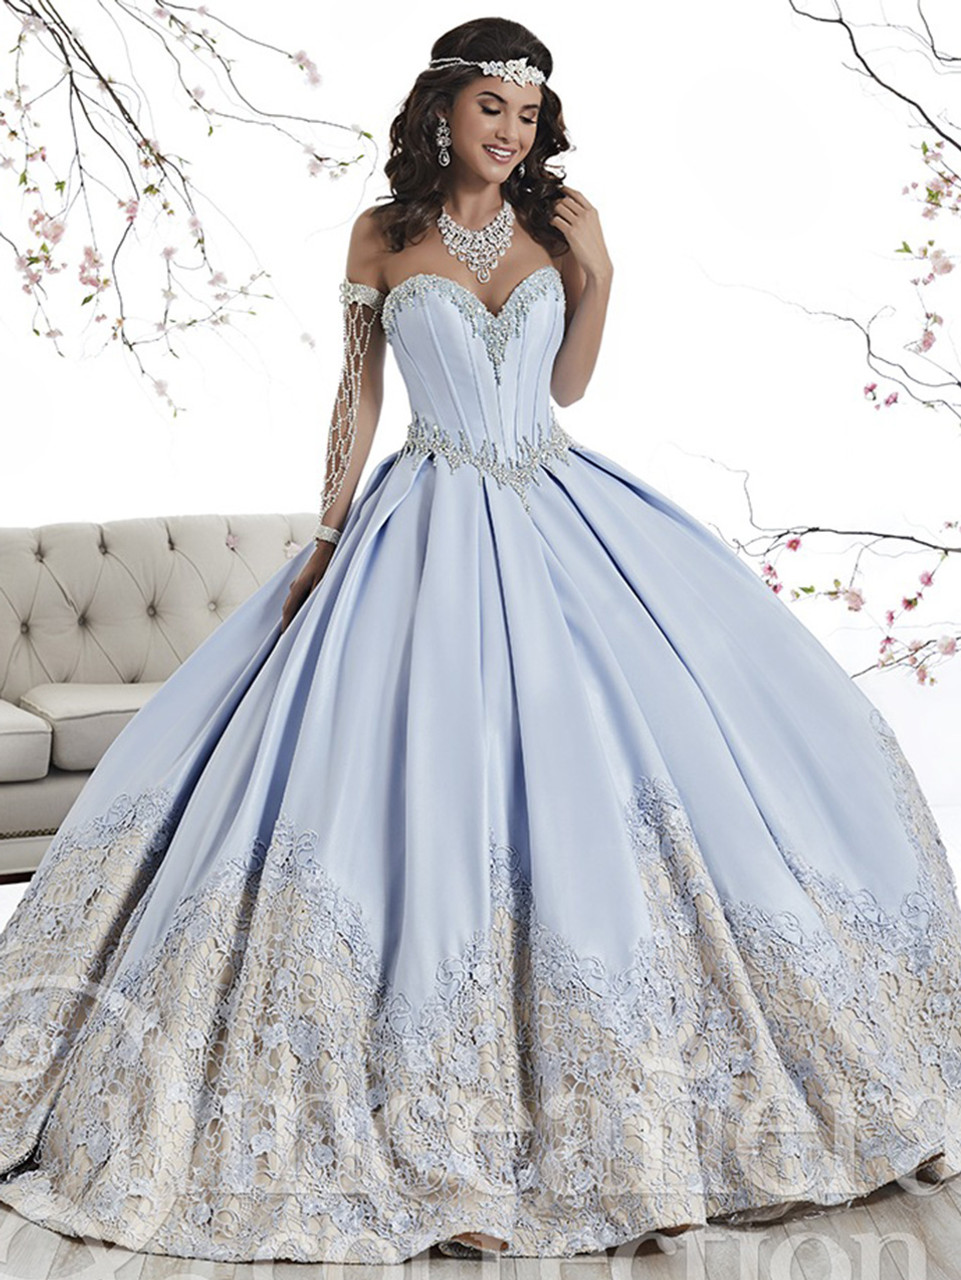 9762e1f7580 Blue quinceanera dress in satin with a spectacular lace hem